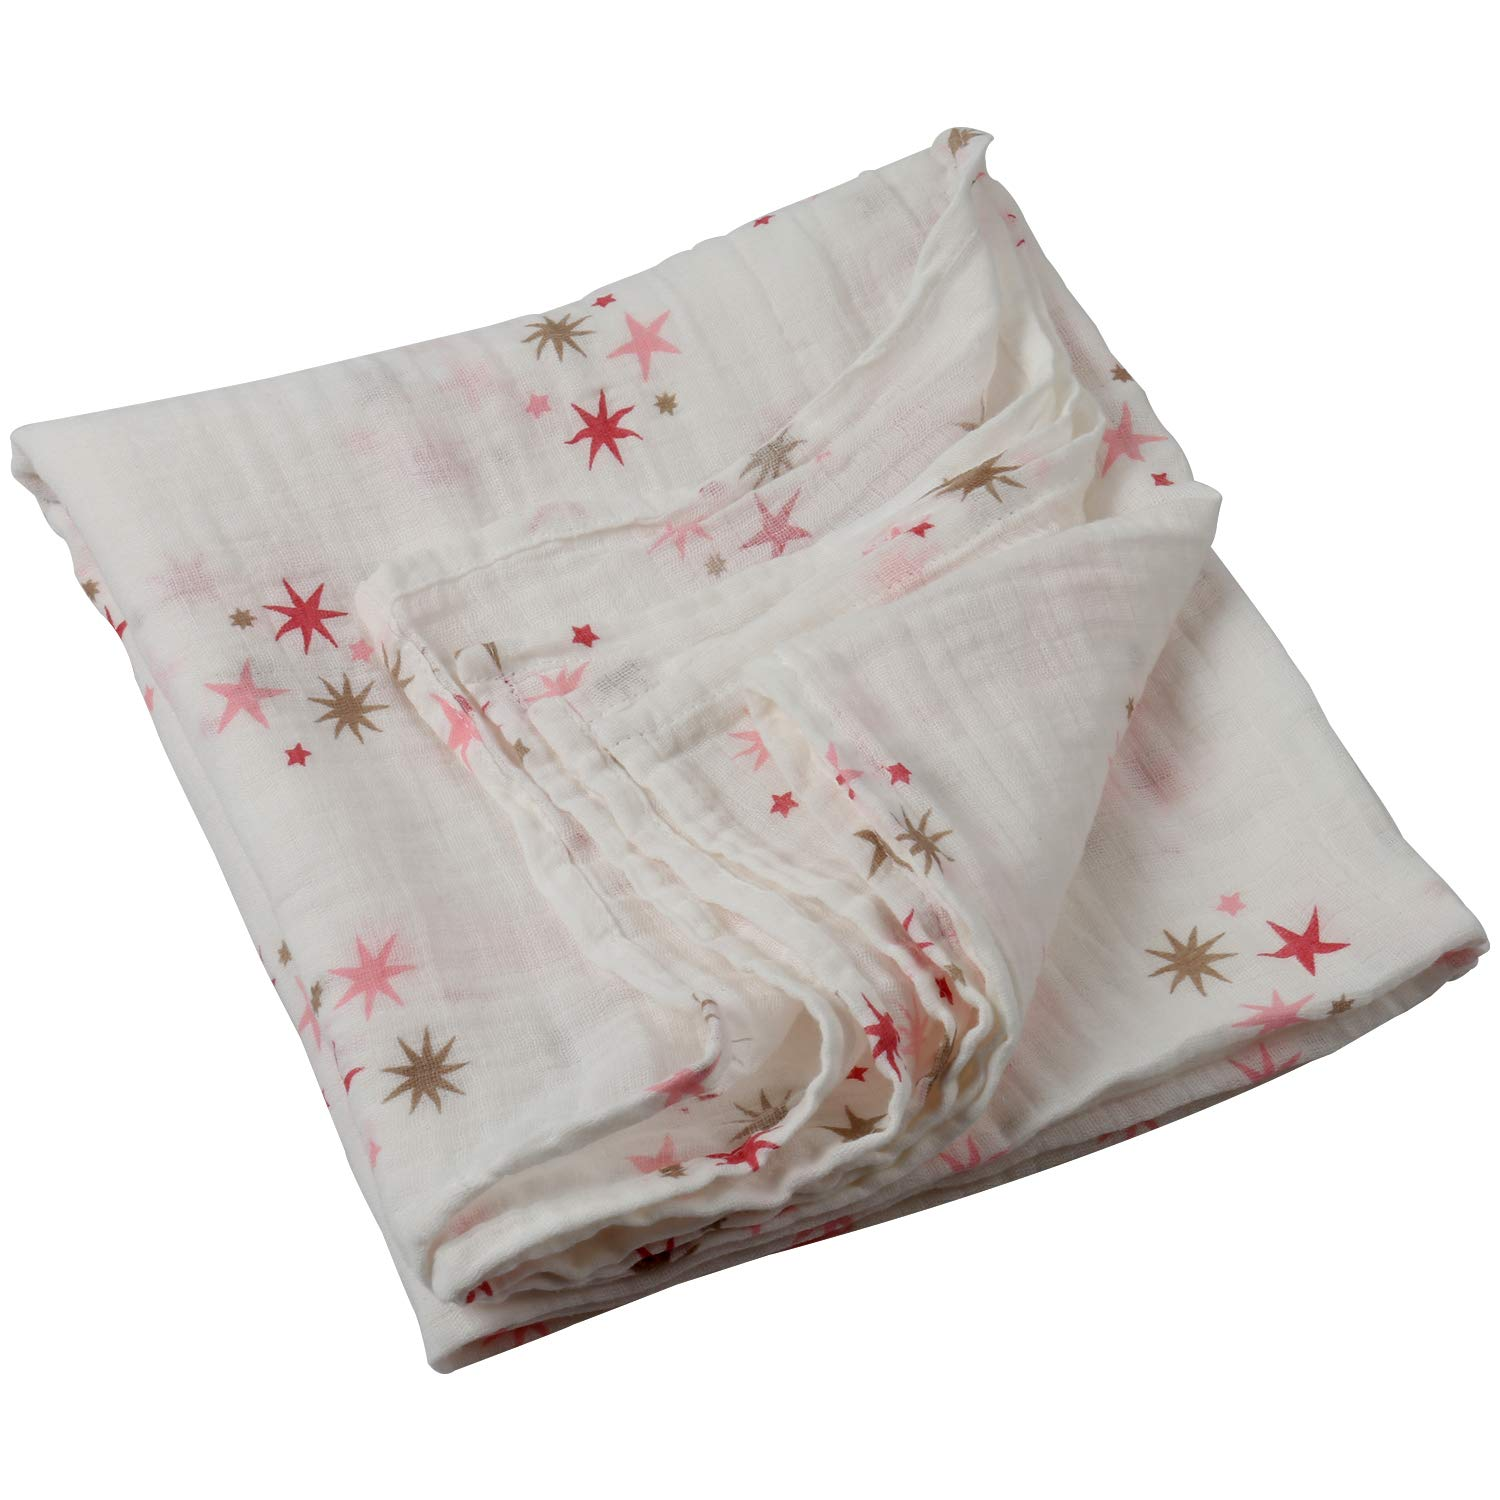 Large Muslin Swaddle Blankets for Newborn Baby, Cotton Silky Organic Flora Swaddle Blanket Boy and Girl (Sakura) wonlex BB05-12-CA